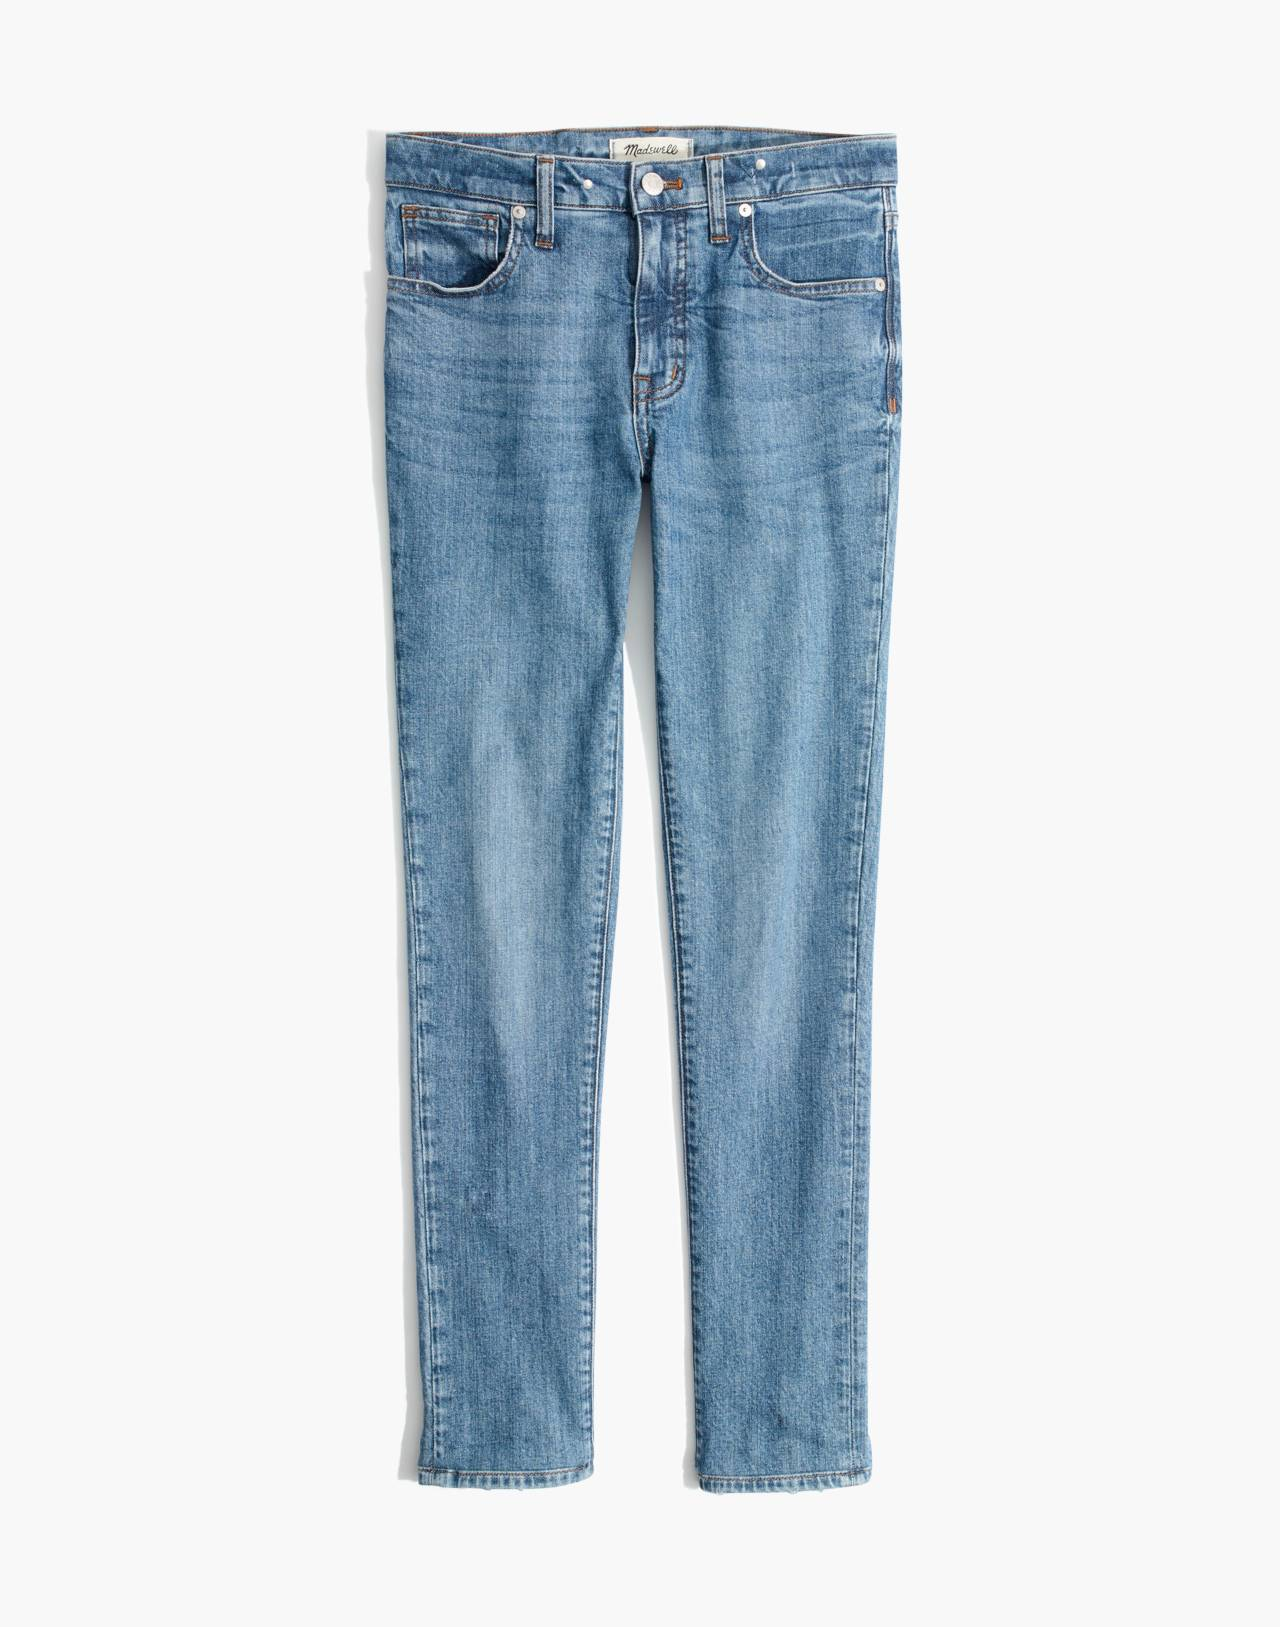 "9"" High-Rise Skinny Jeans in Comfort Stretch: Eco Edition in regina wash image 4"